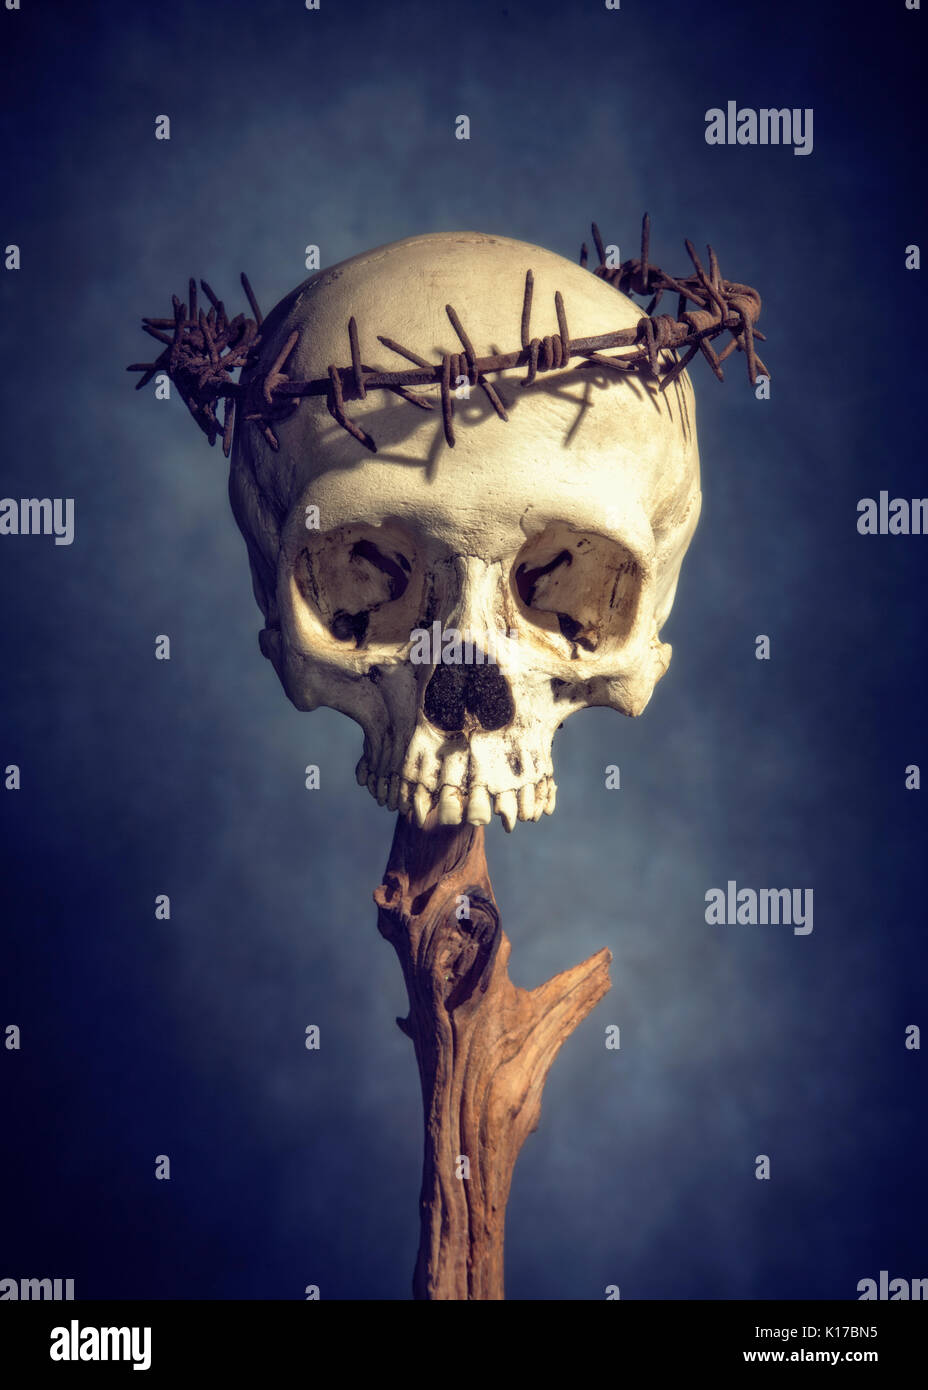 Color photograph of skull with barbed wire crown - Stock Image